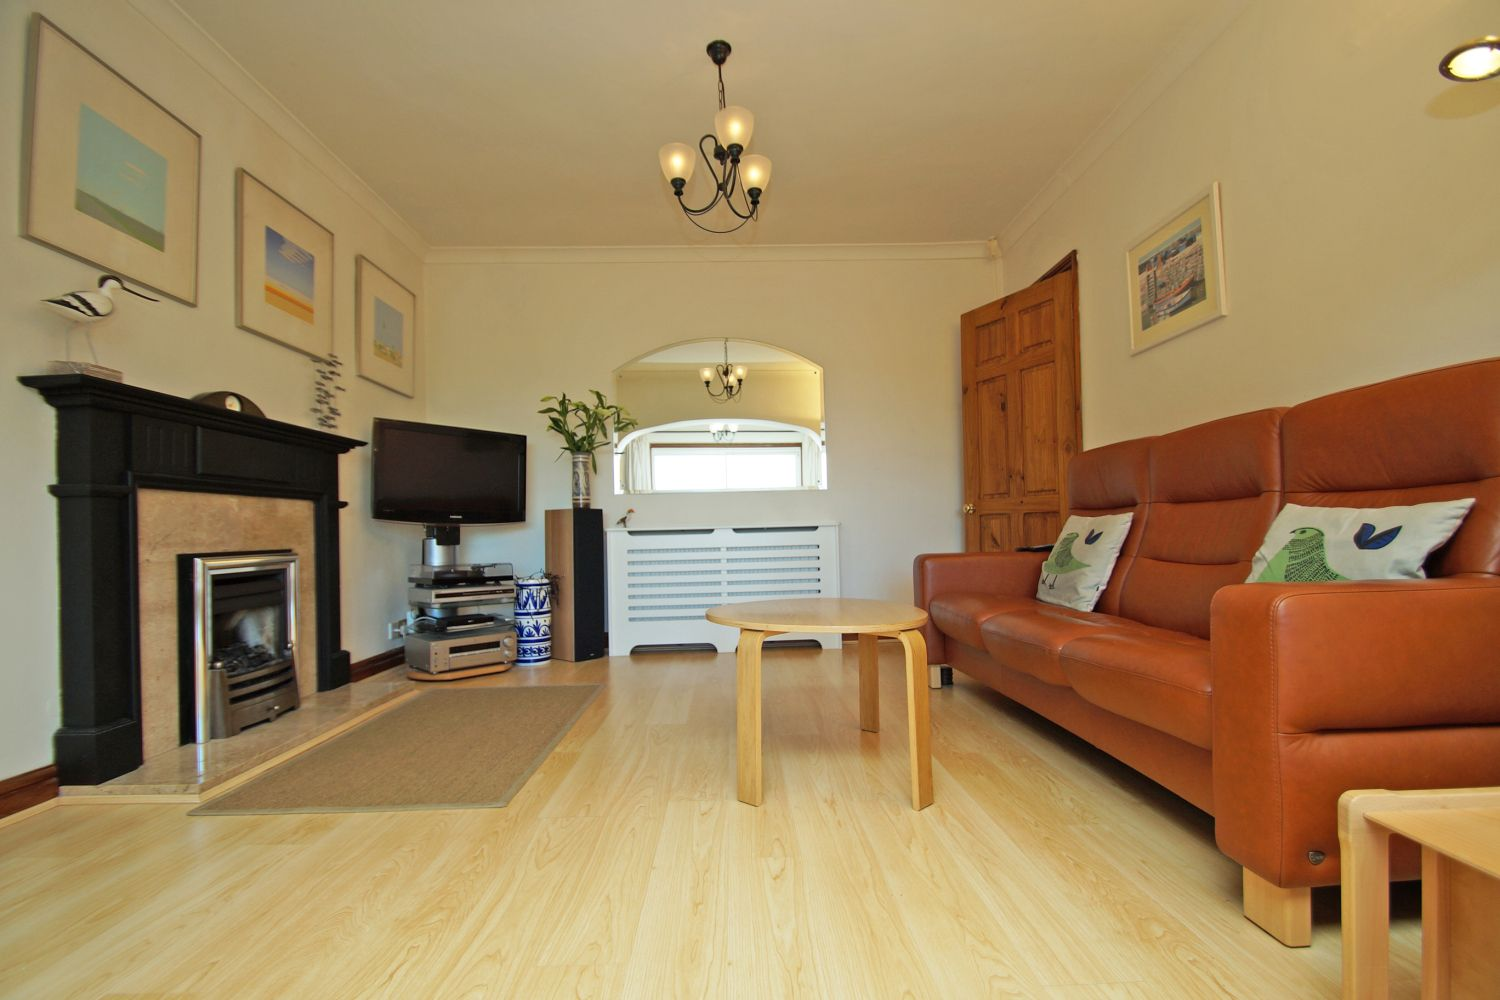 3 bed detached for sale in Fox Lane, Bromsgrove 9